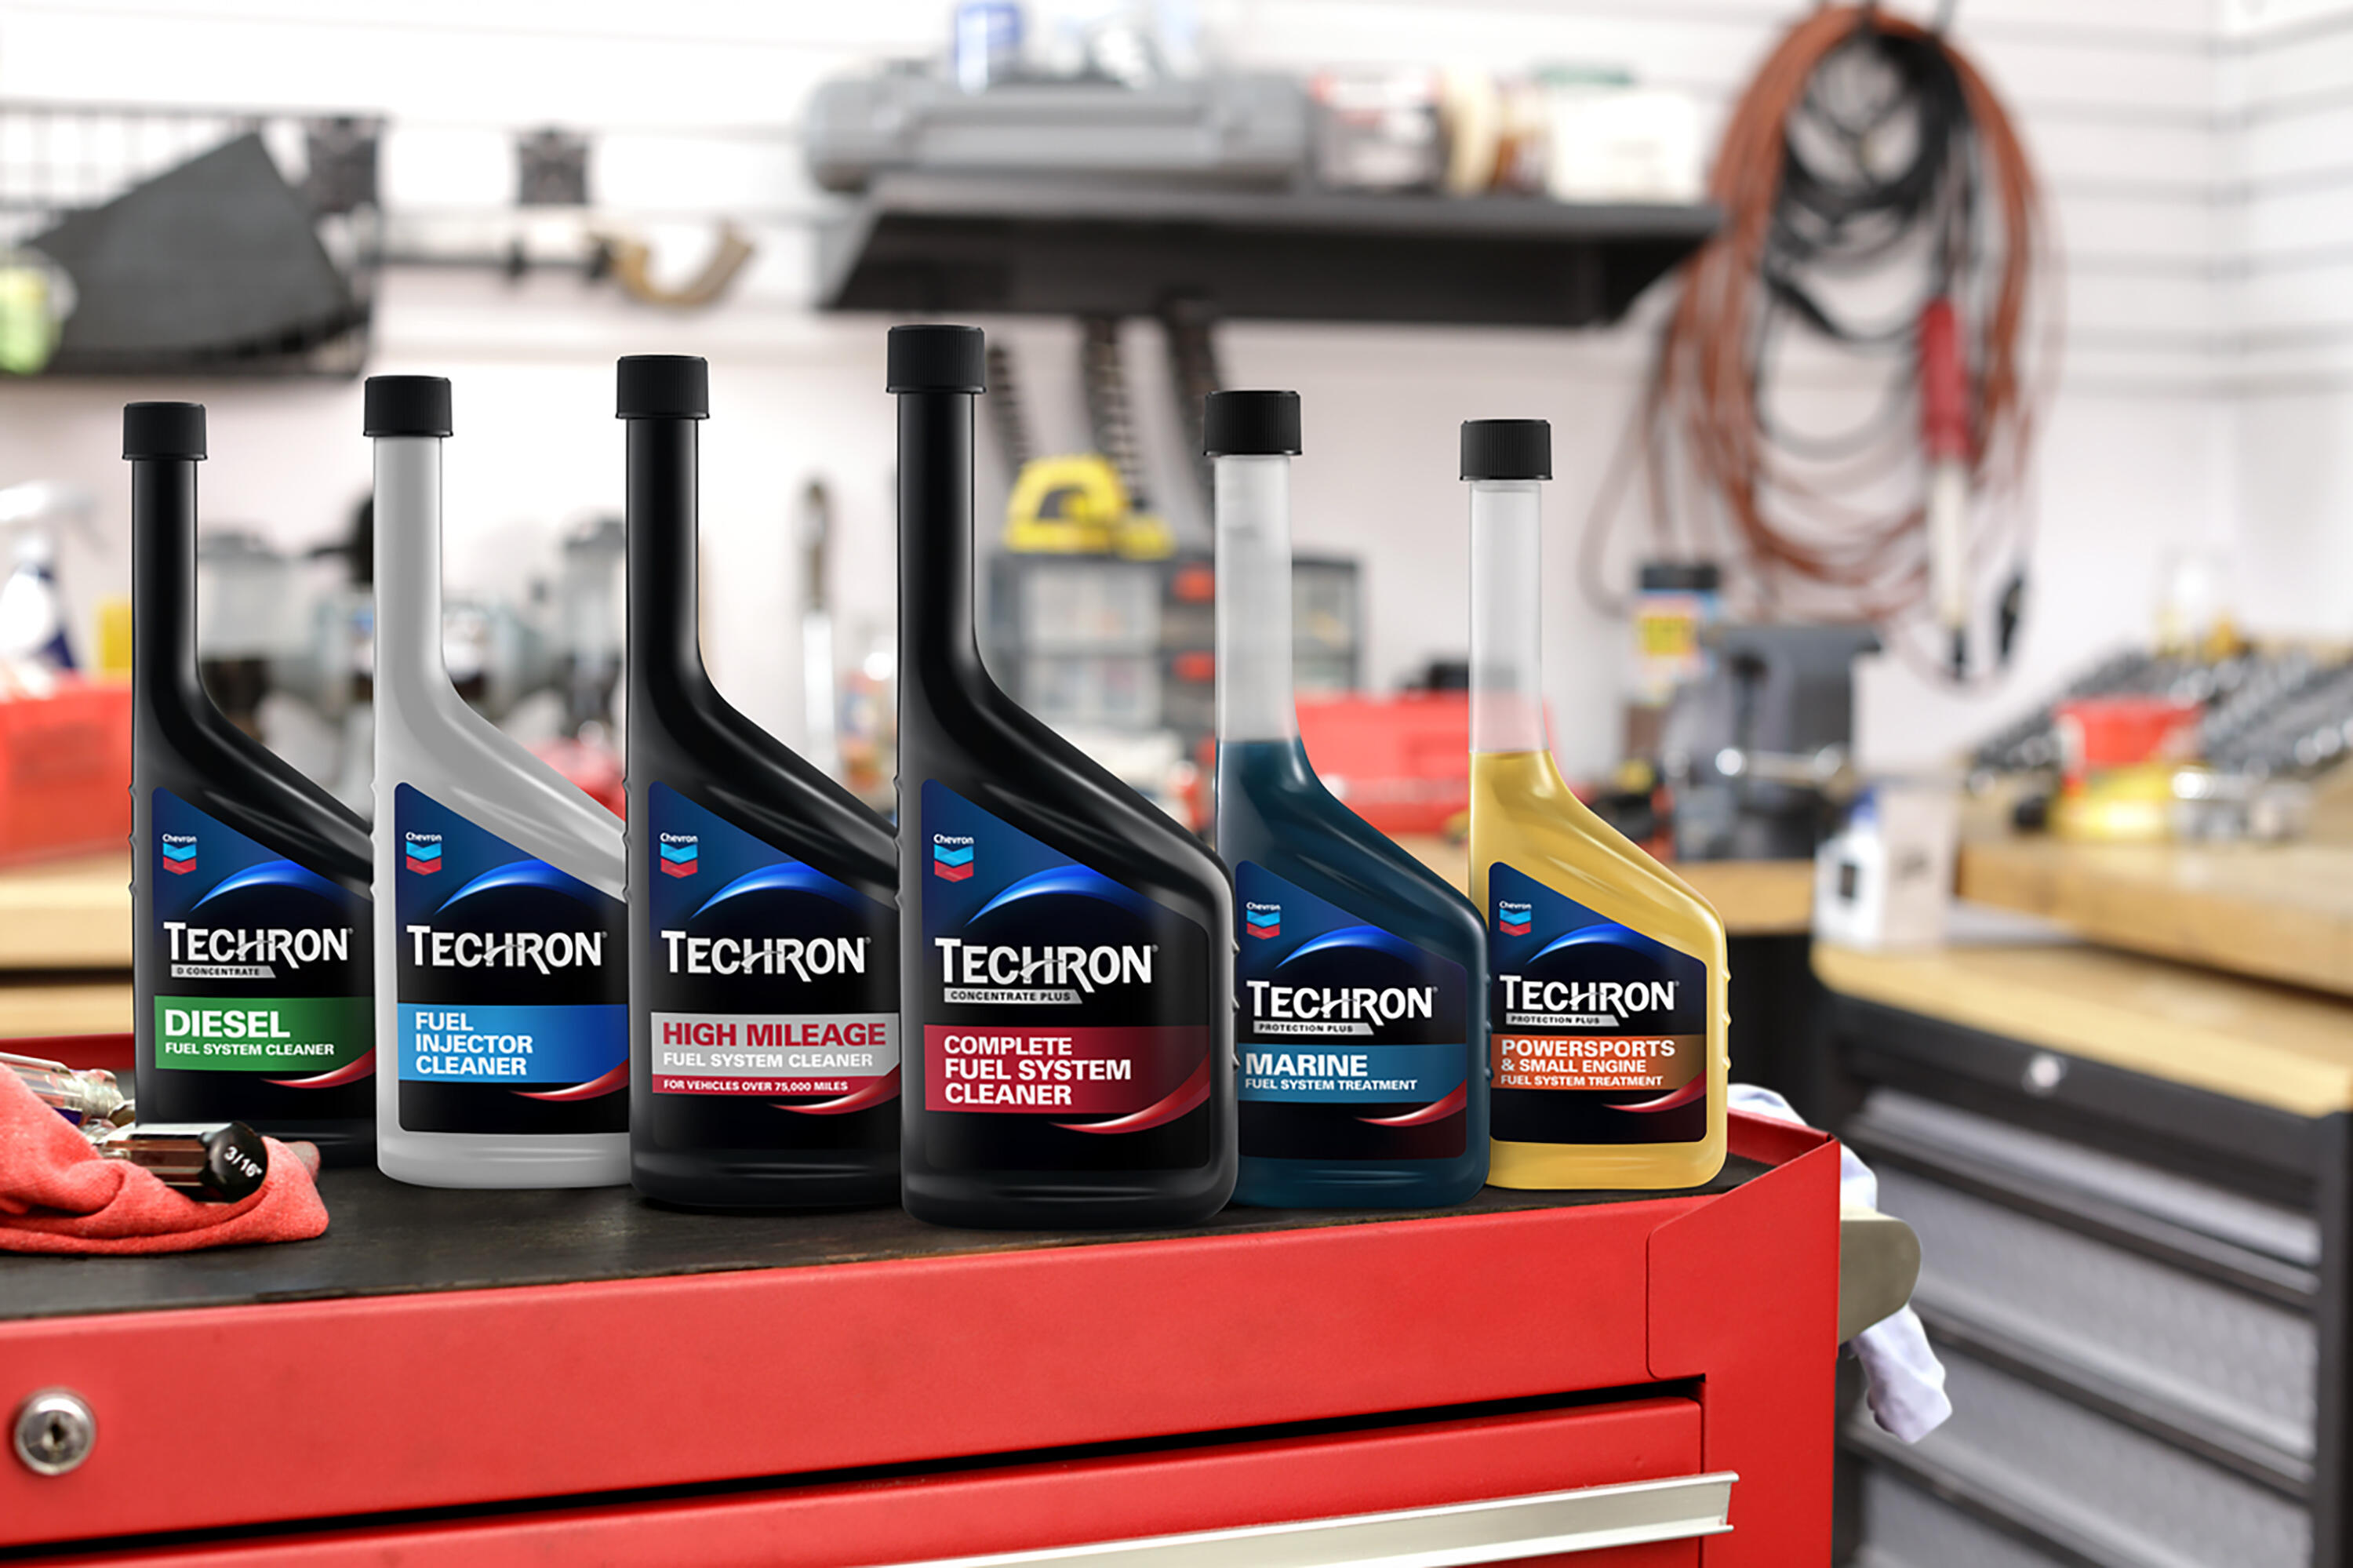 chevron-techron-concentrate-plus-complete-fuel-system-cleaner-family-tool-box